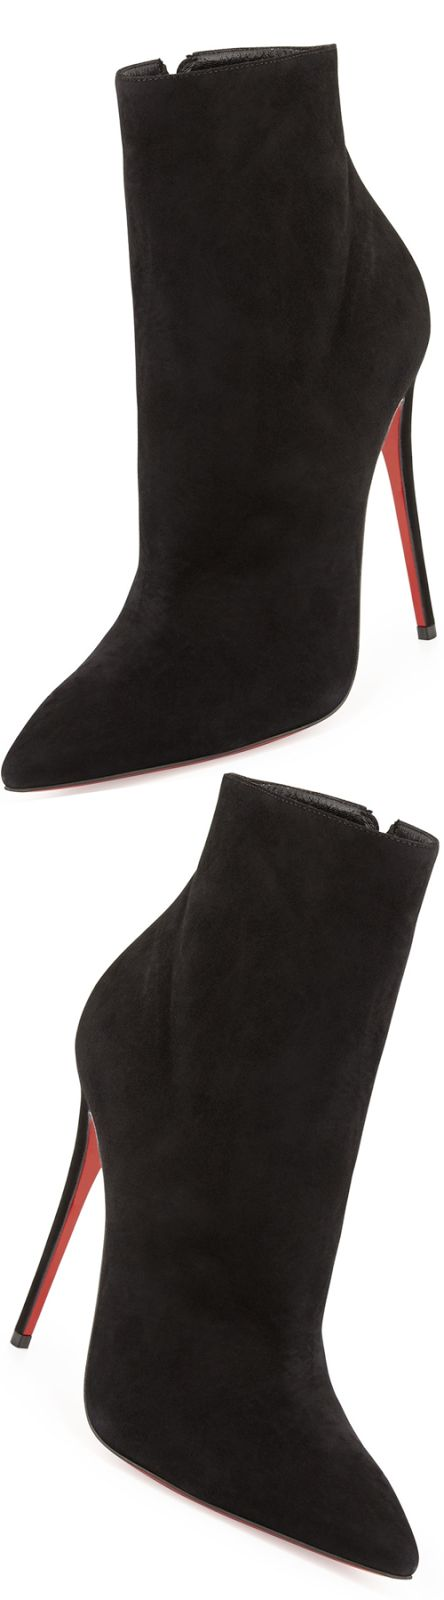 Christian Louboutin So Kate Suede Red Sole Bootie, Black - LOOKandLOVEwithLOLO